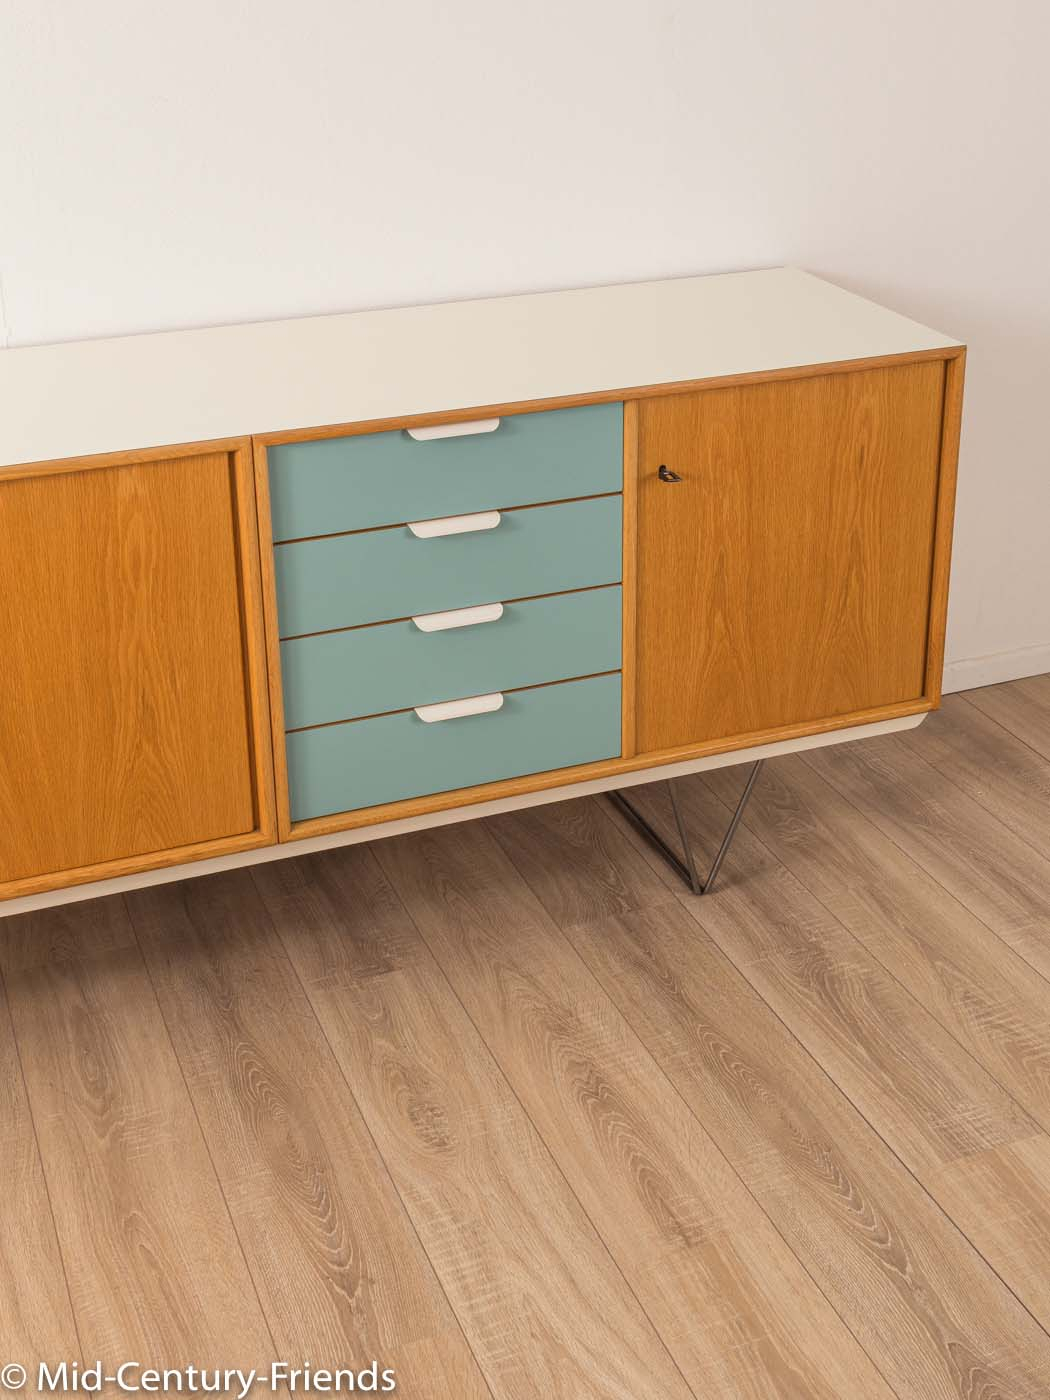 1960Er Jahre Sideboard, Heinrich Riestenpatt|Mid Century Friends intended for Mid-Century Brown and Grey Sideboards (Image 1 of 30)